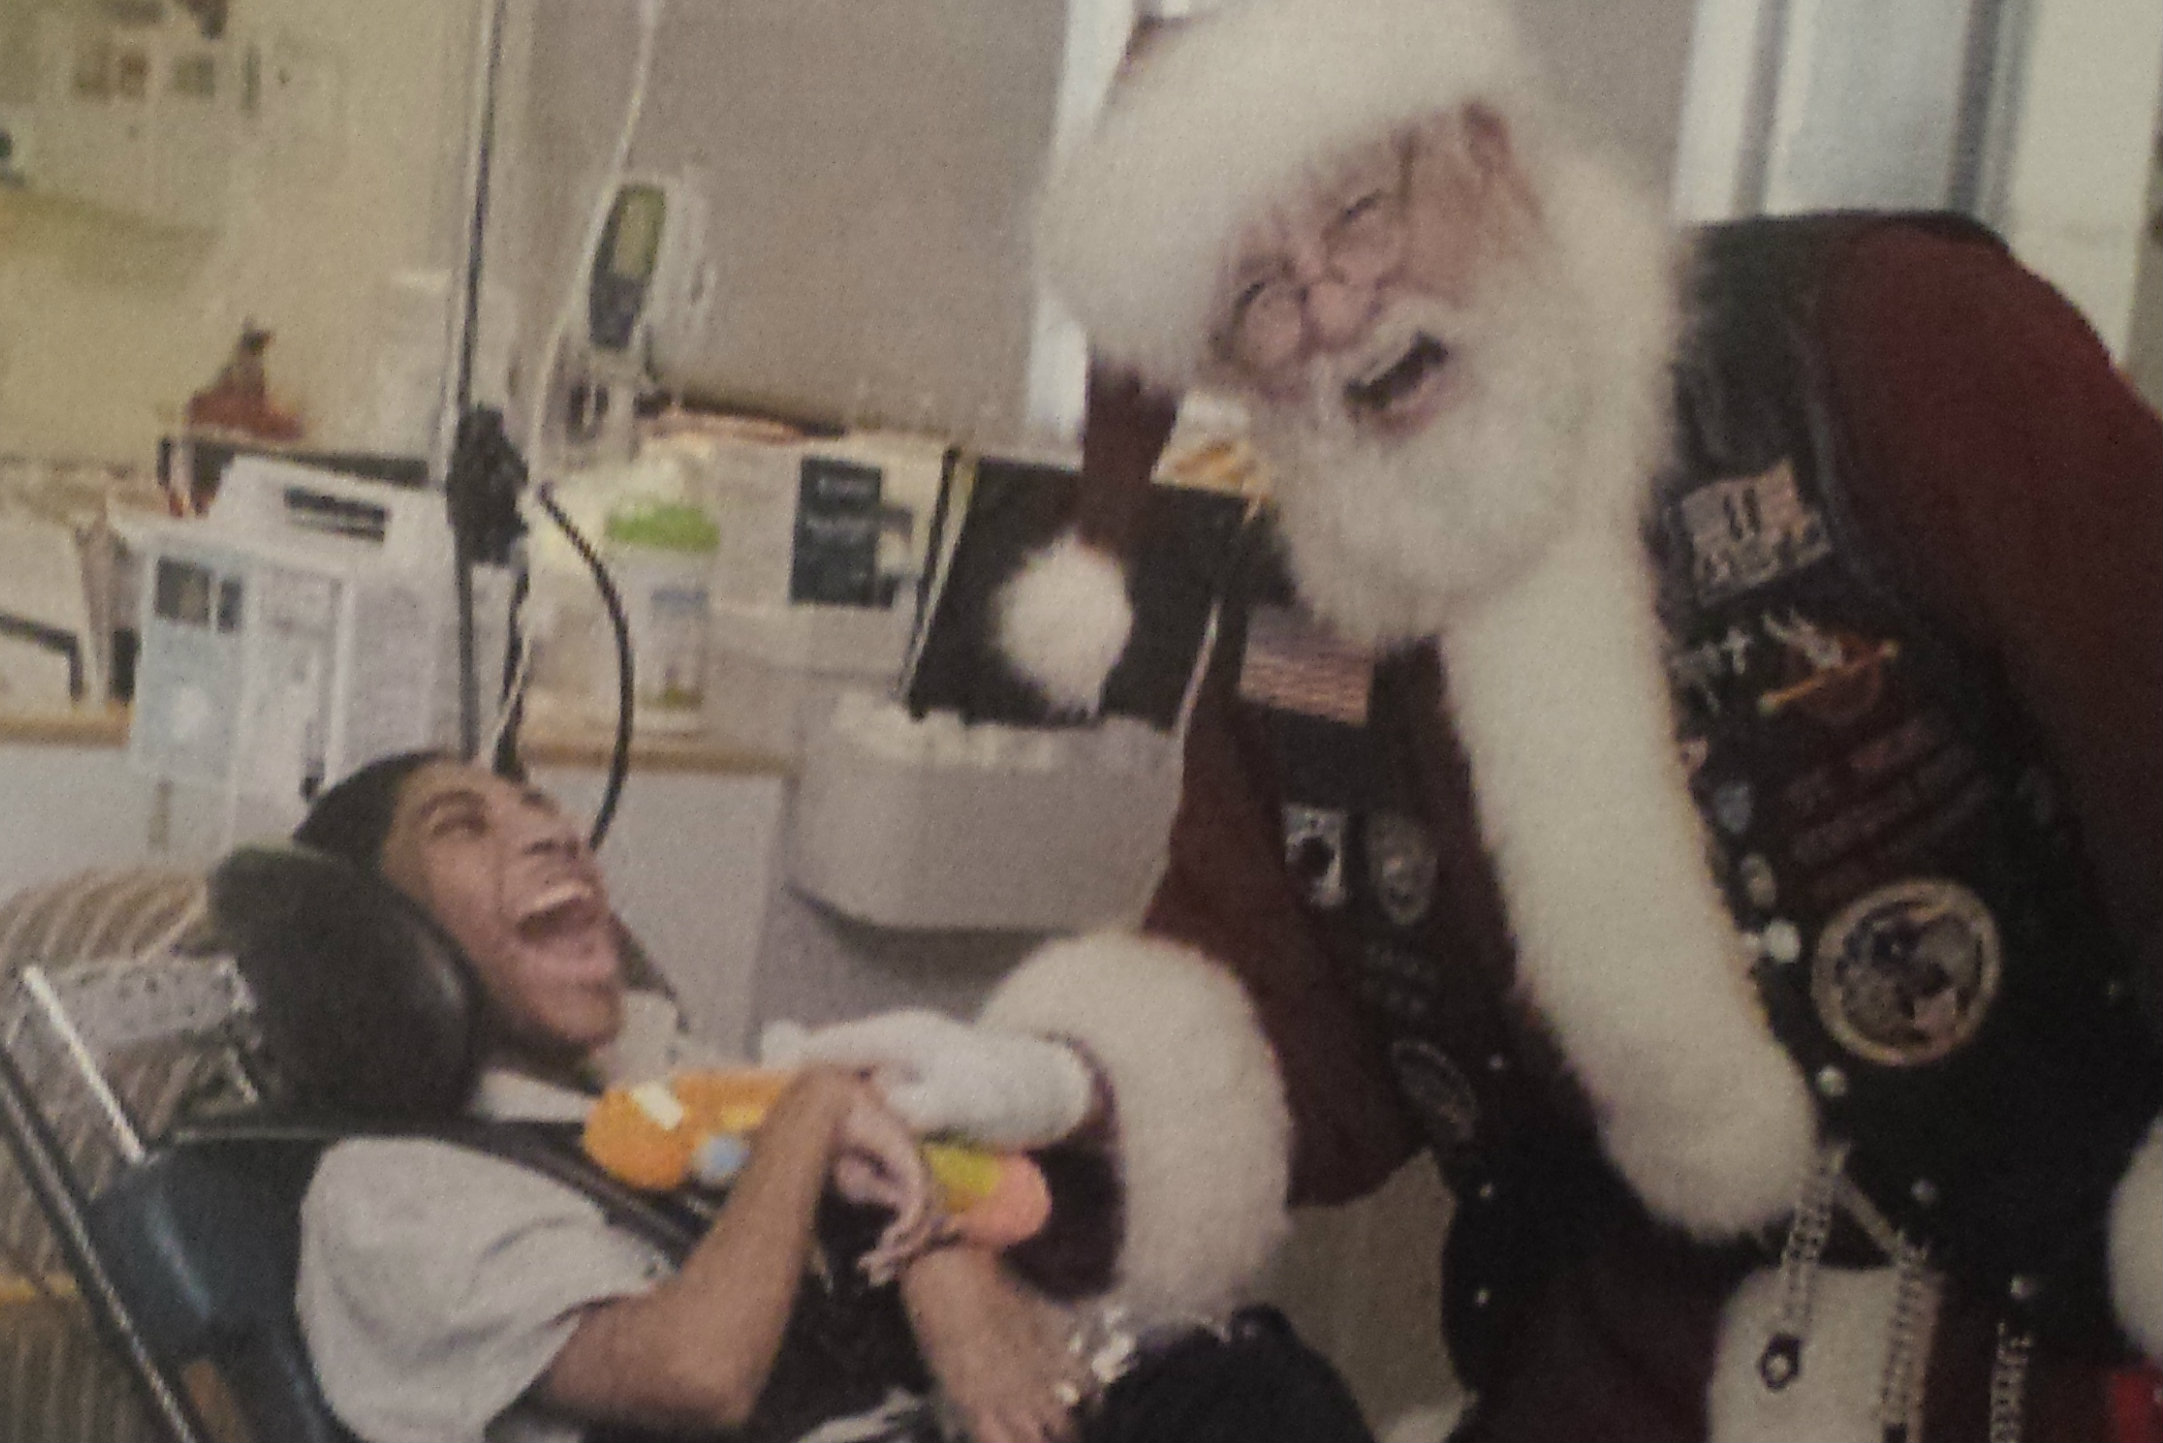 Joe Sarnoski brings a smile to the faces of the children he visits in local hospitals. He's affectionately called